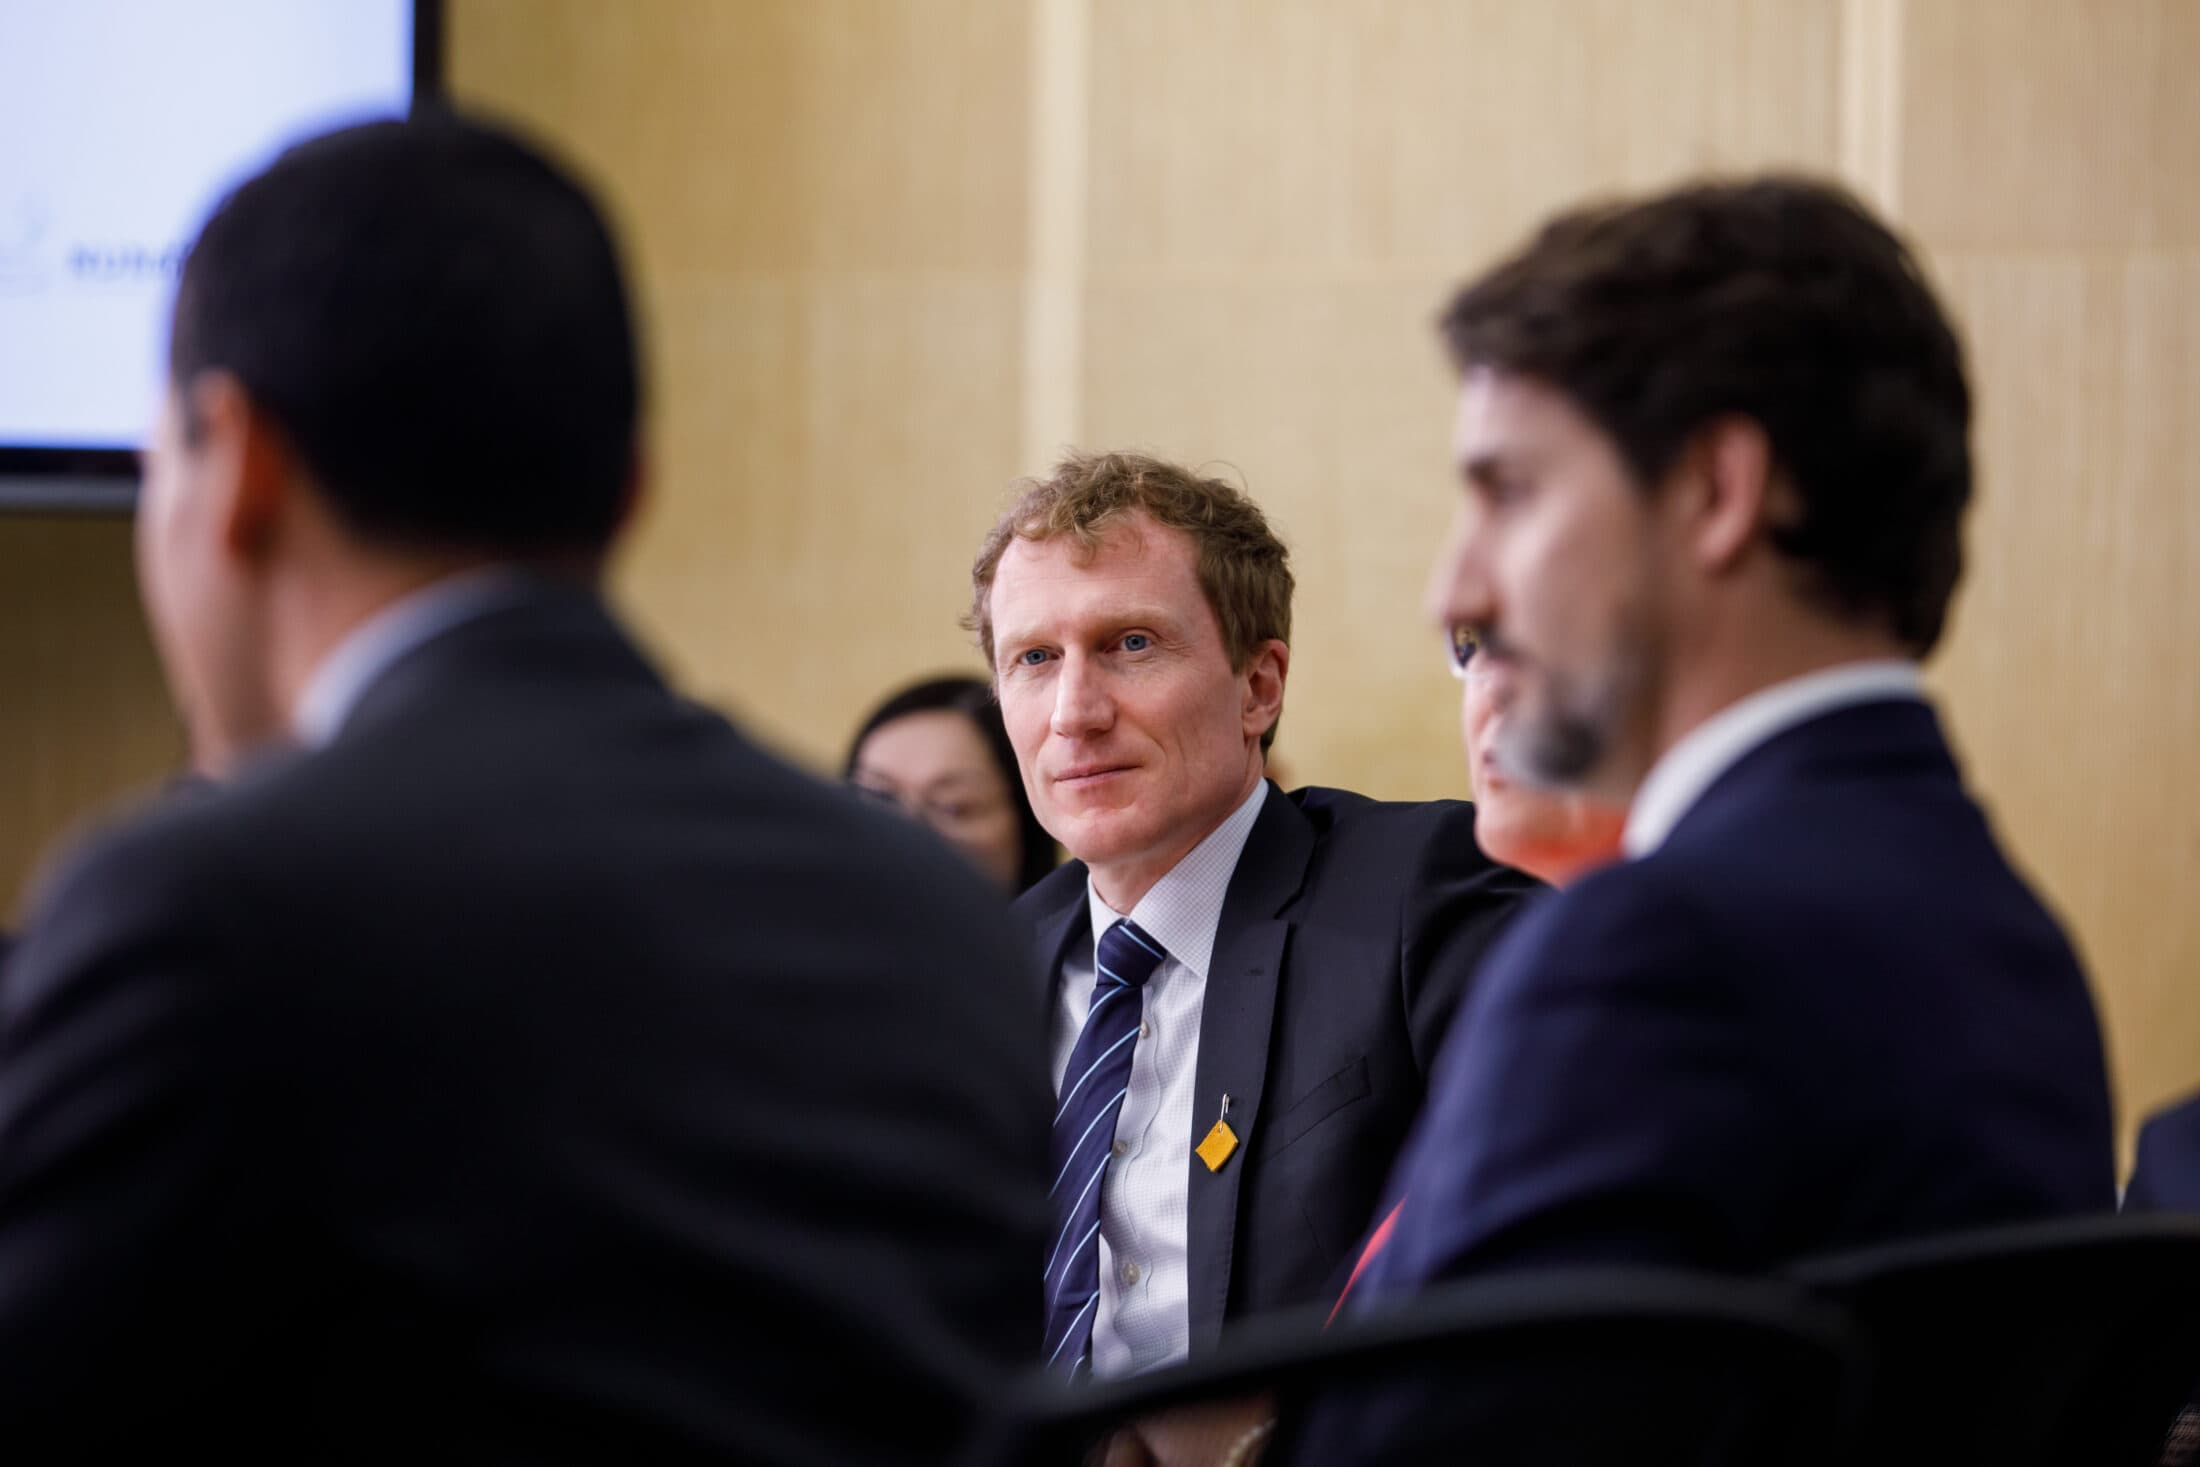 Marc Miller and Justin Trudeau seated indoors